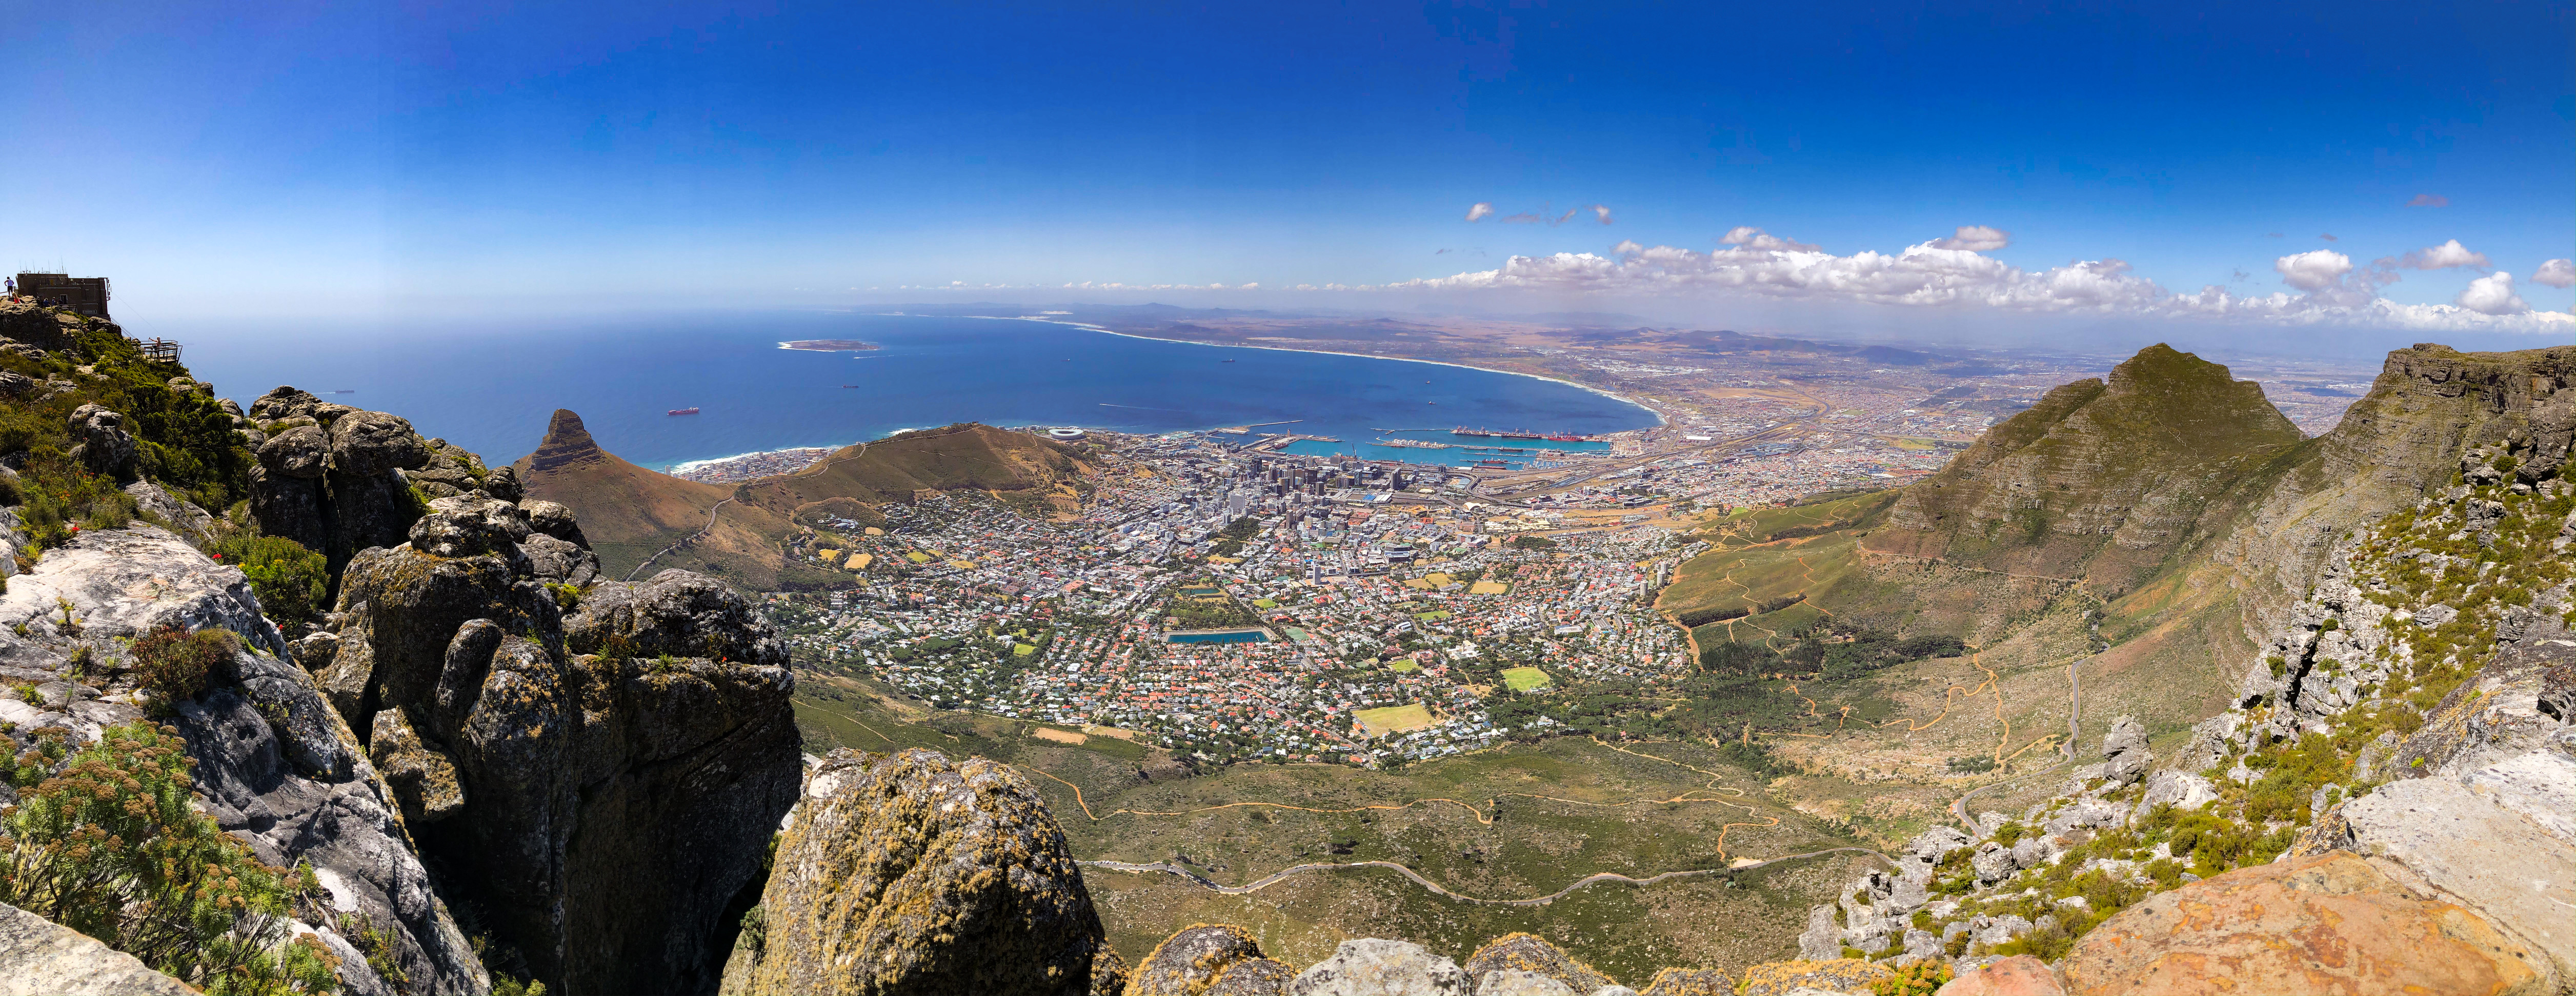 Cape Town 3 above